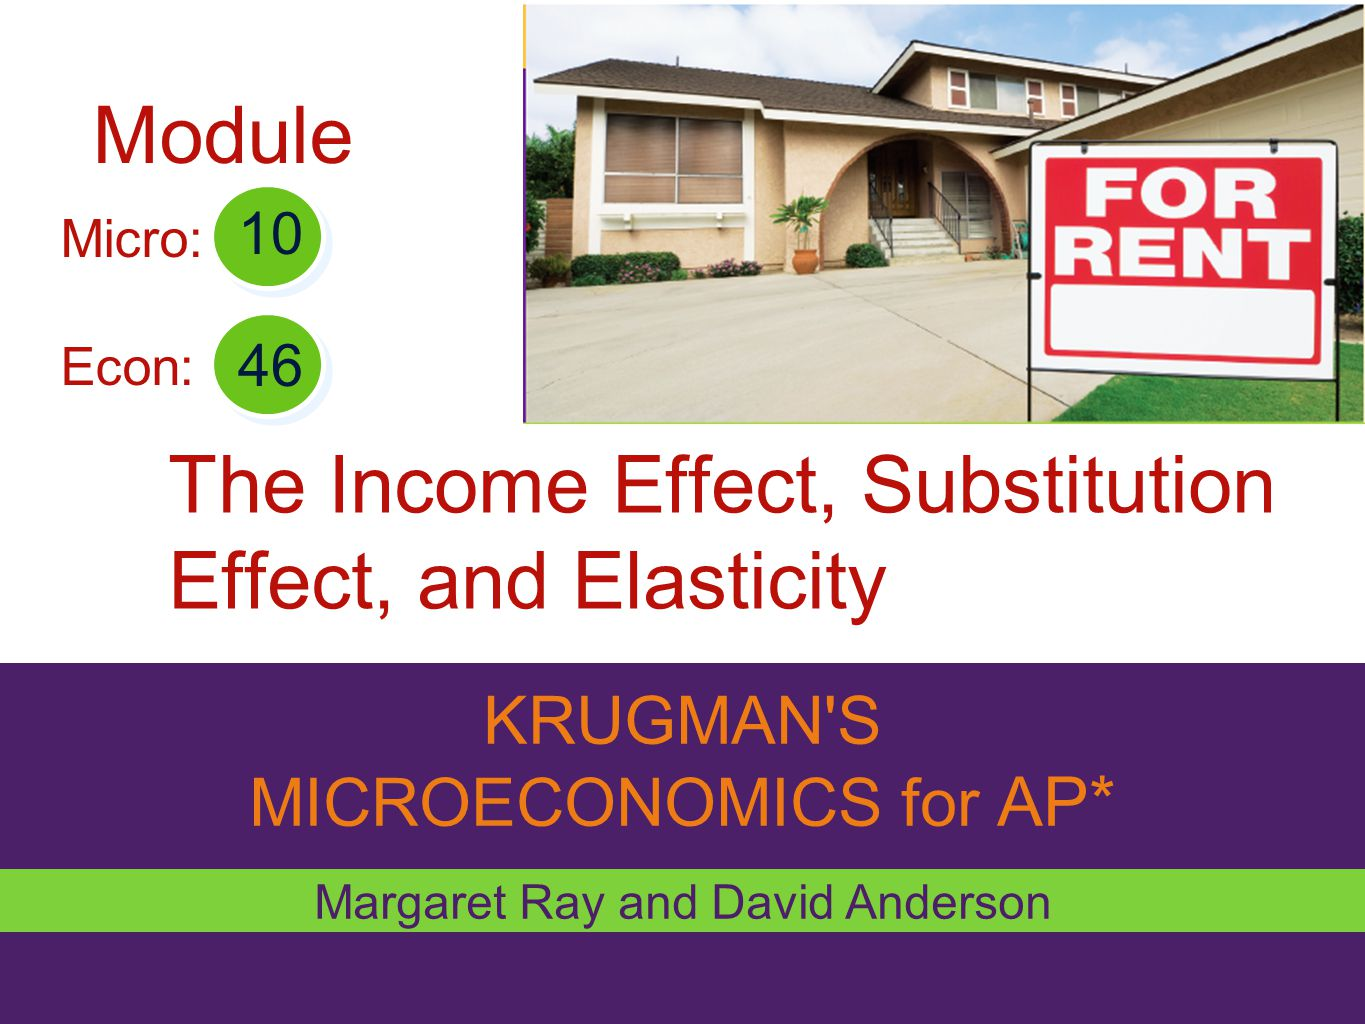 KRUGMAN'S MICROECONOMICS for AP* The Income Effect, Substitution Effect, and Elasticity Margaret Ray and David Anderson 46 10 Micro: Econ: Module